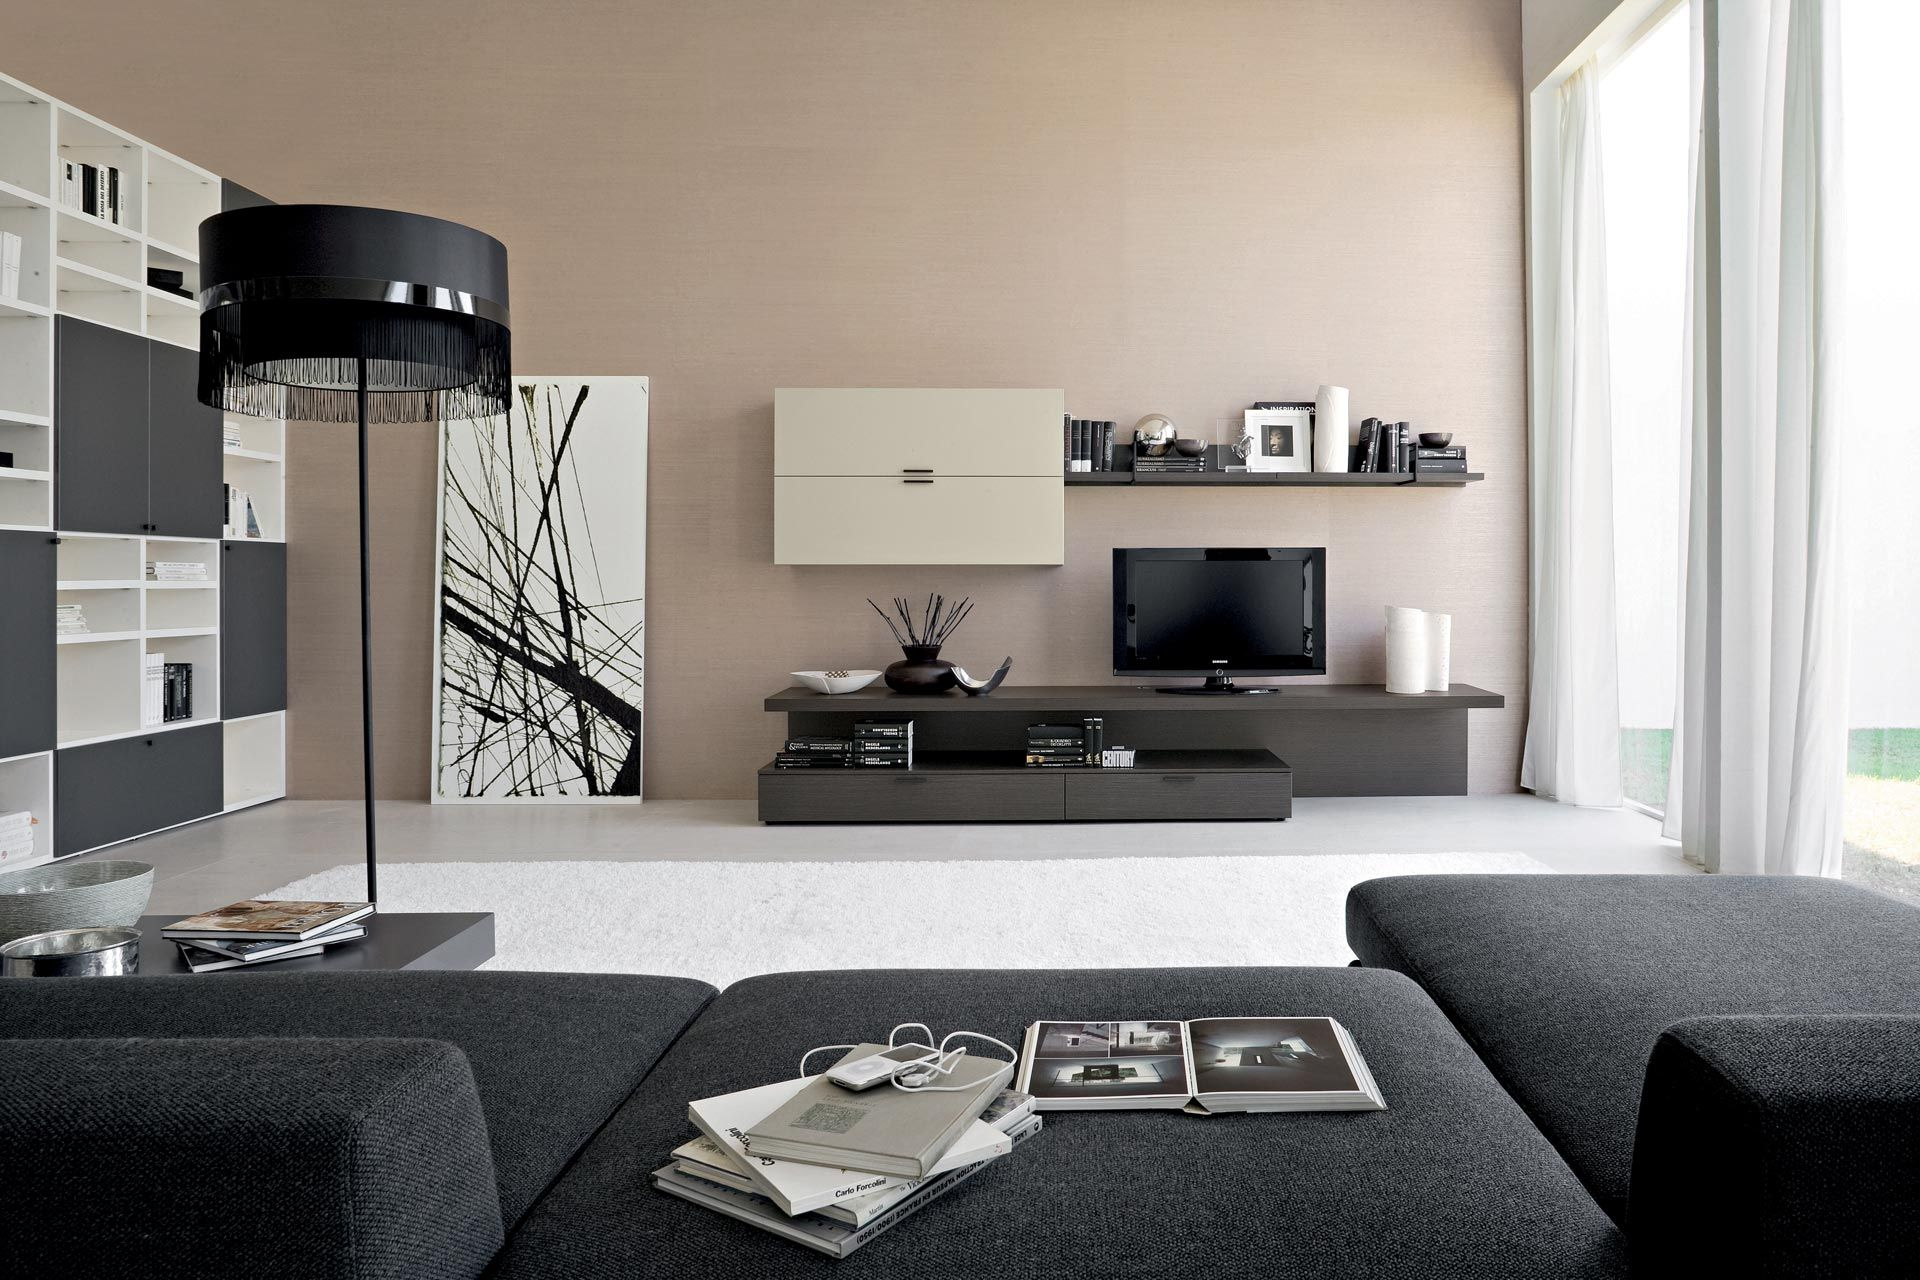 Arturo on | Living rooms, Brown walls and Modern living rooms